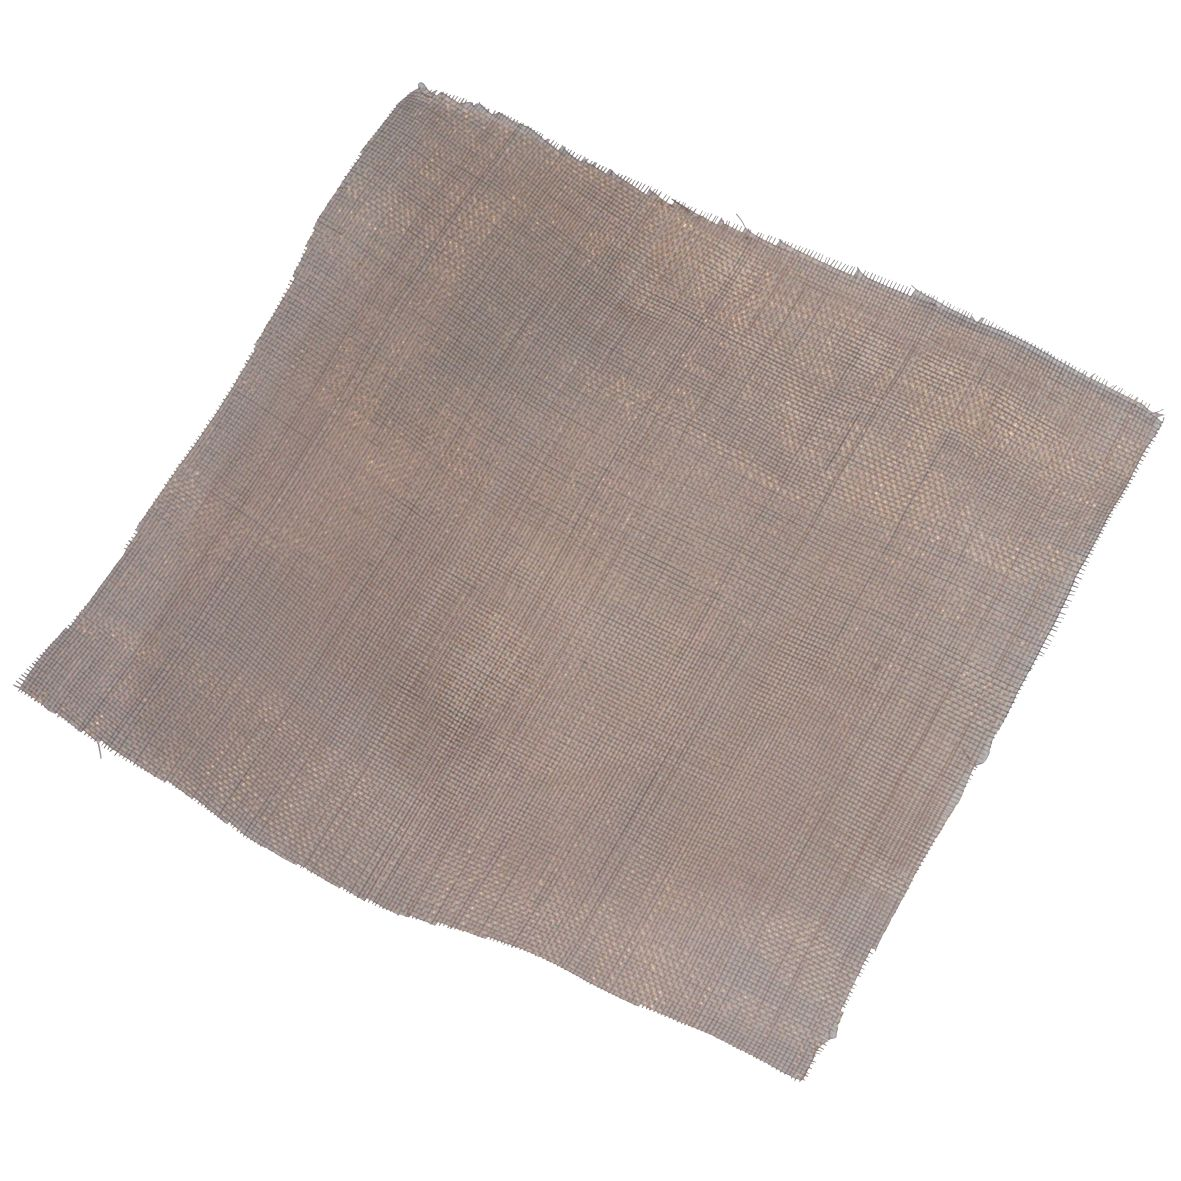 COPPER MESH - FINE GRADE 150mm Square